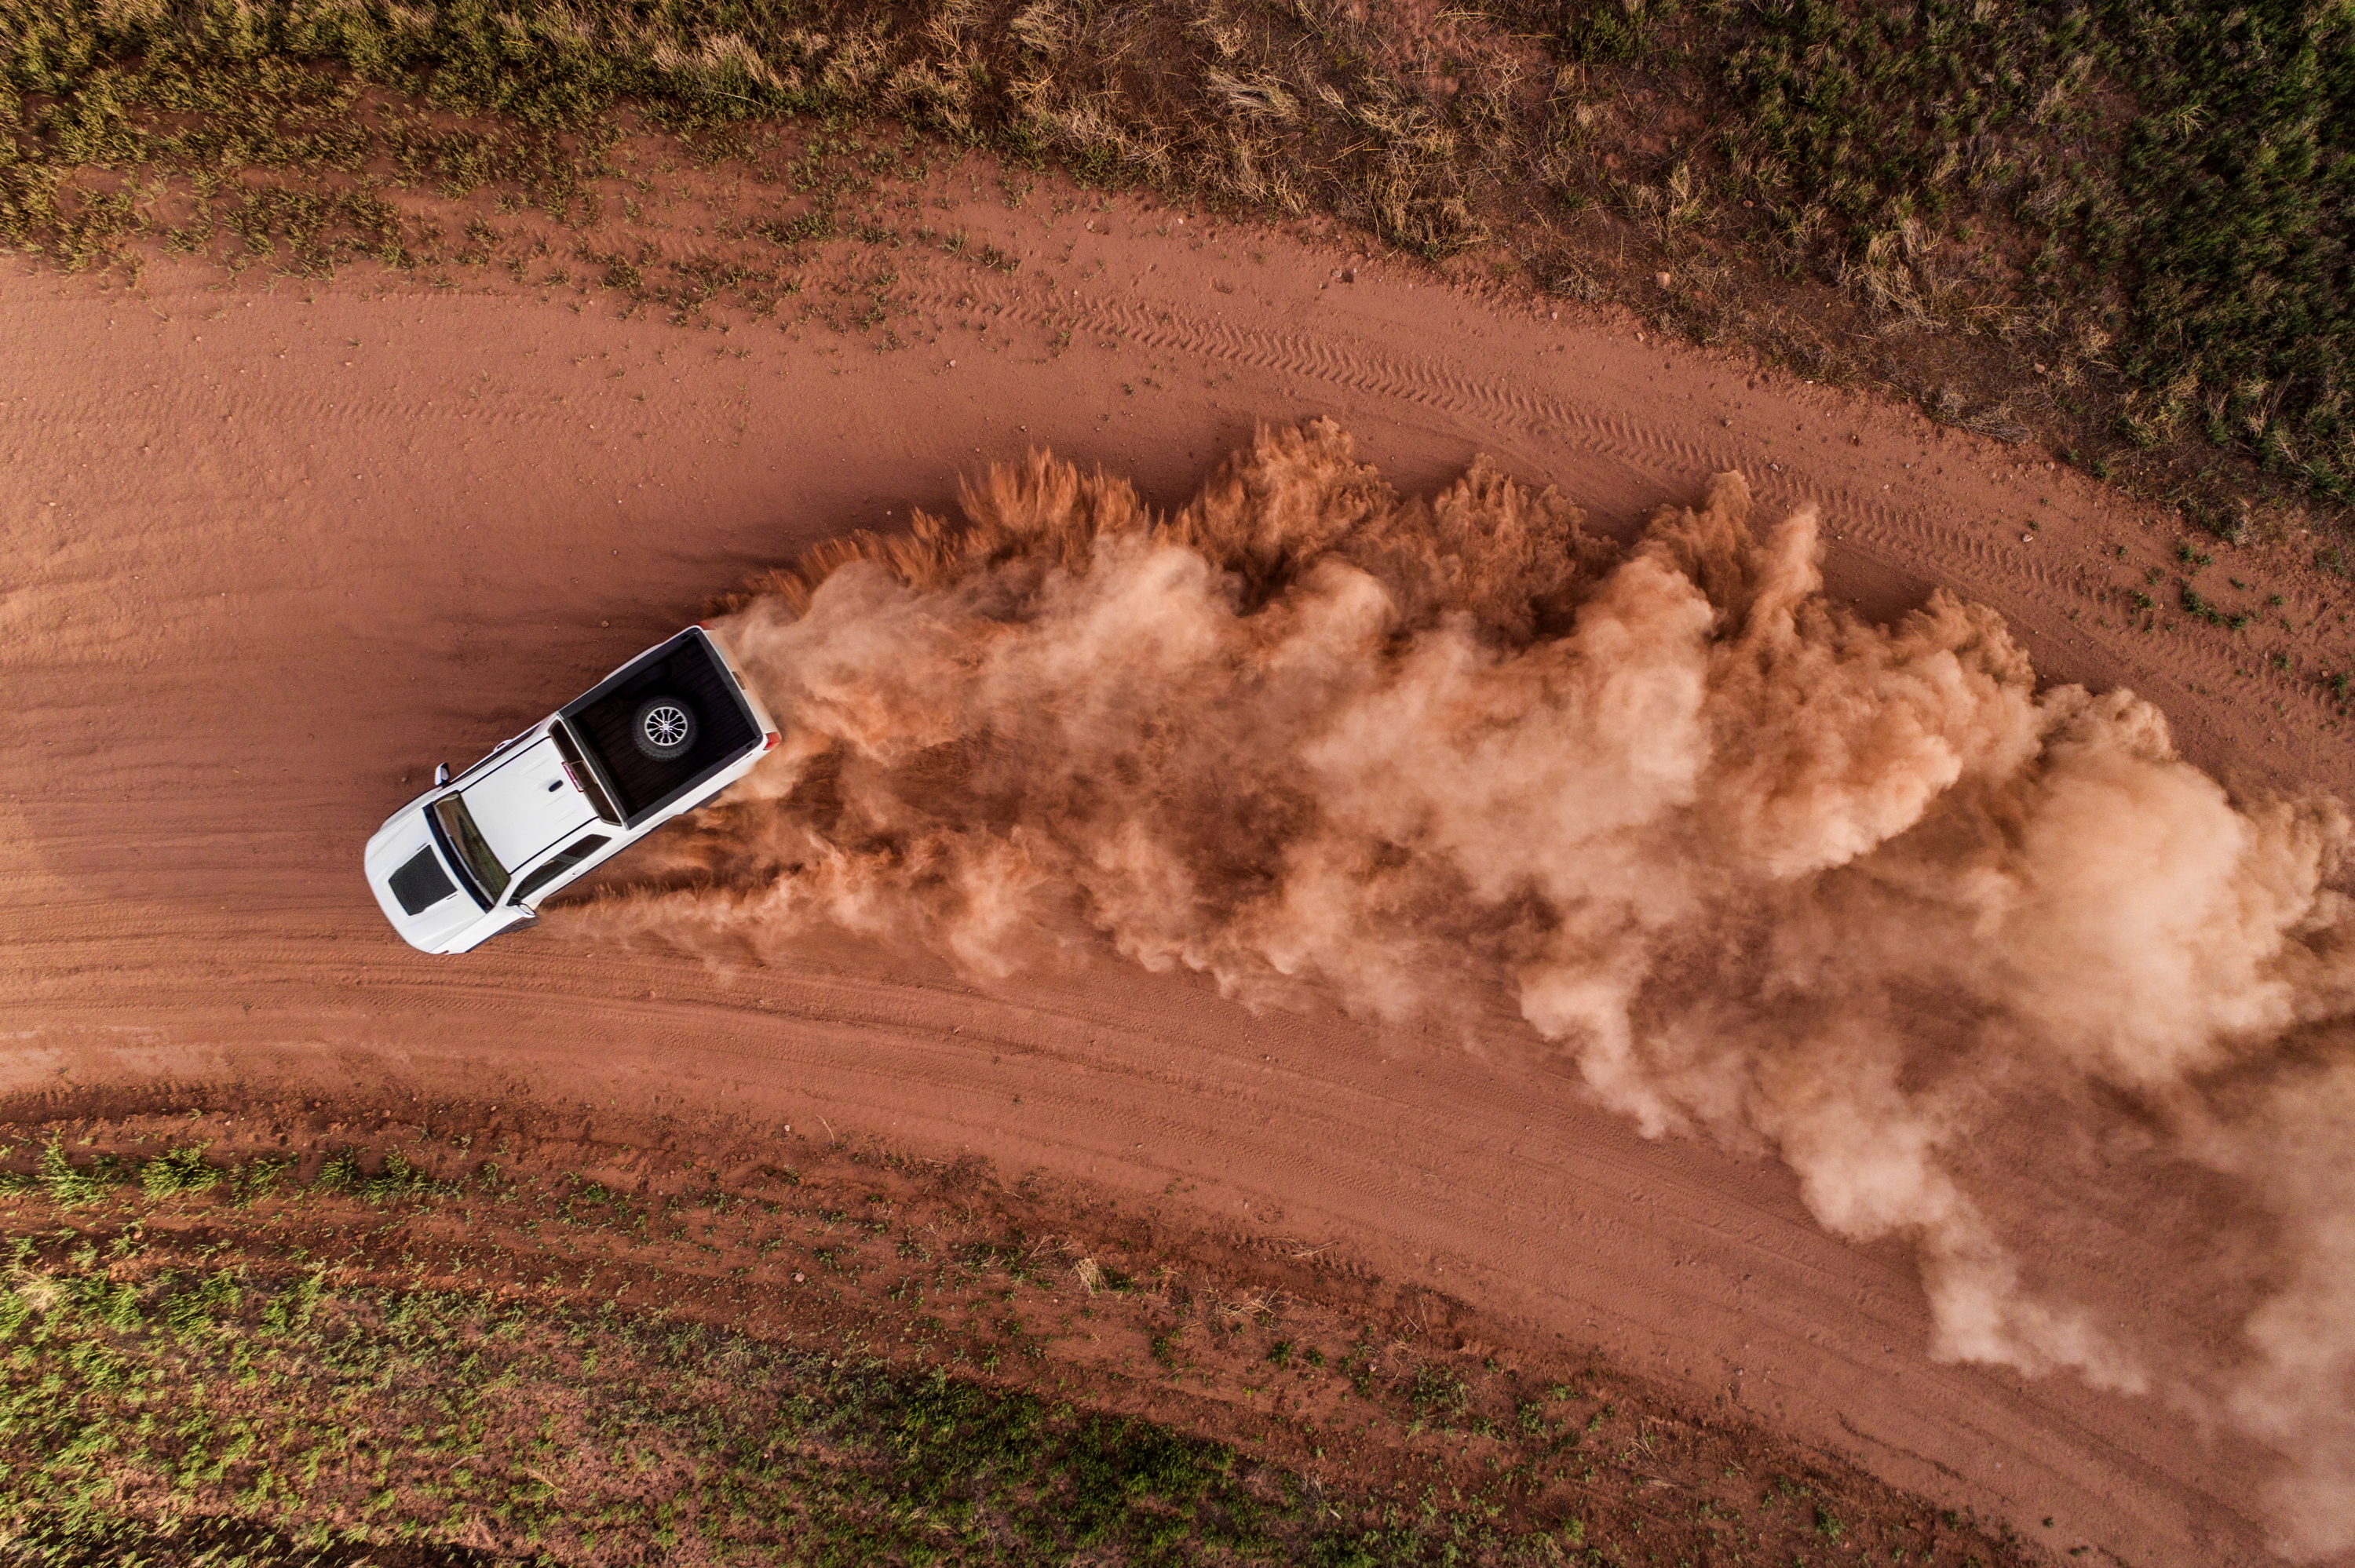 The 2017 Chevrolet Colorado ZR2 has plenty of power to have fun in the dirt